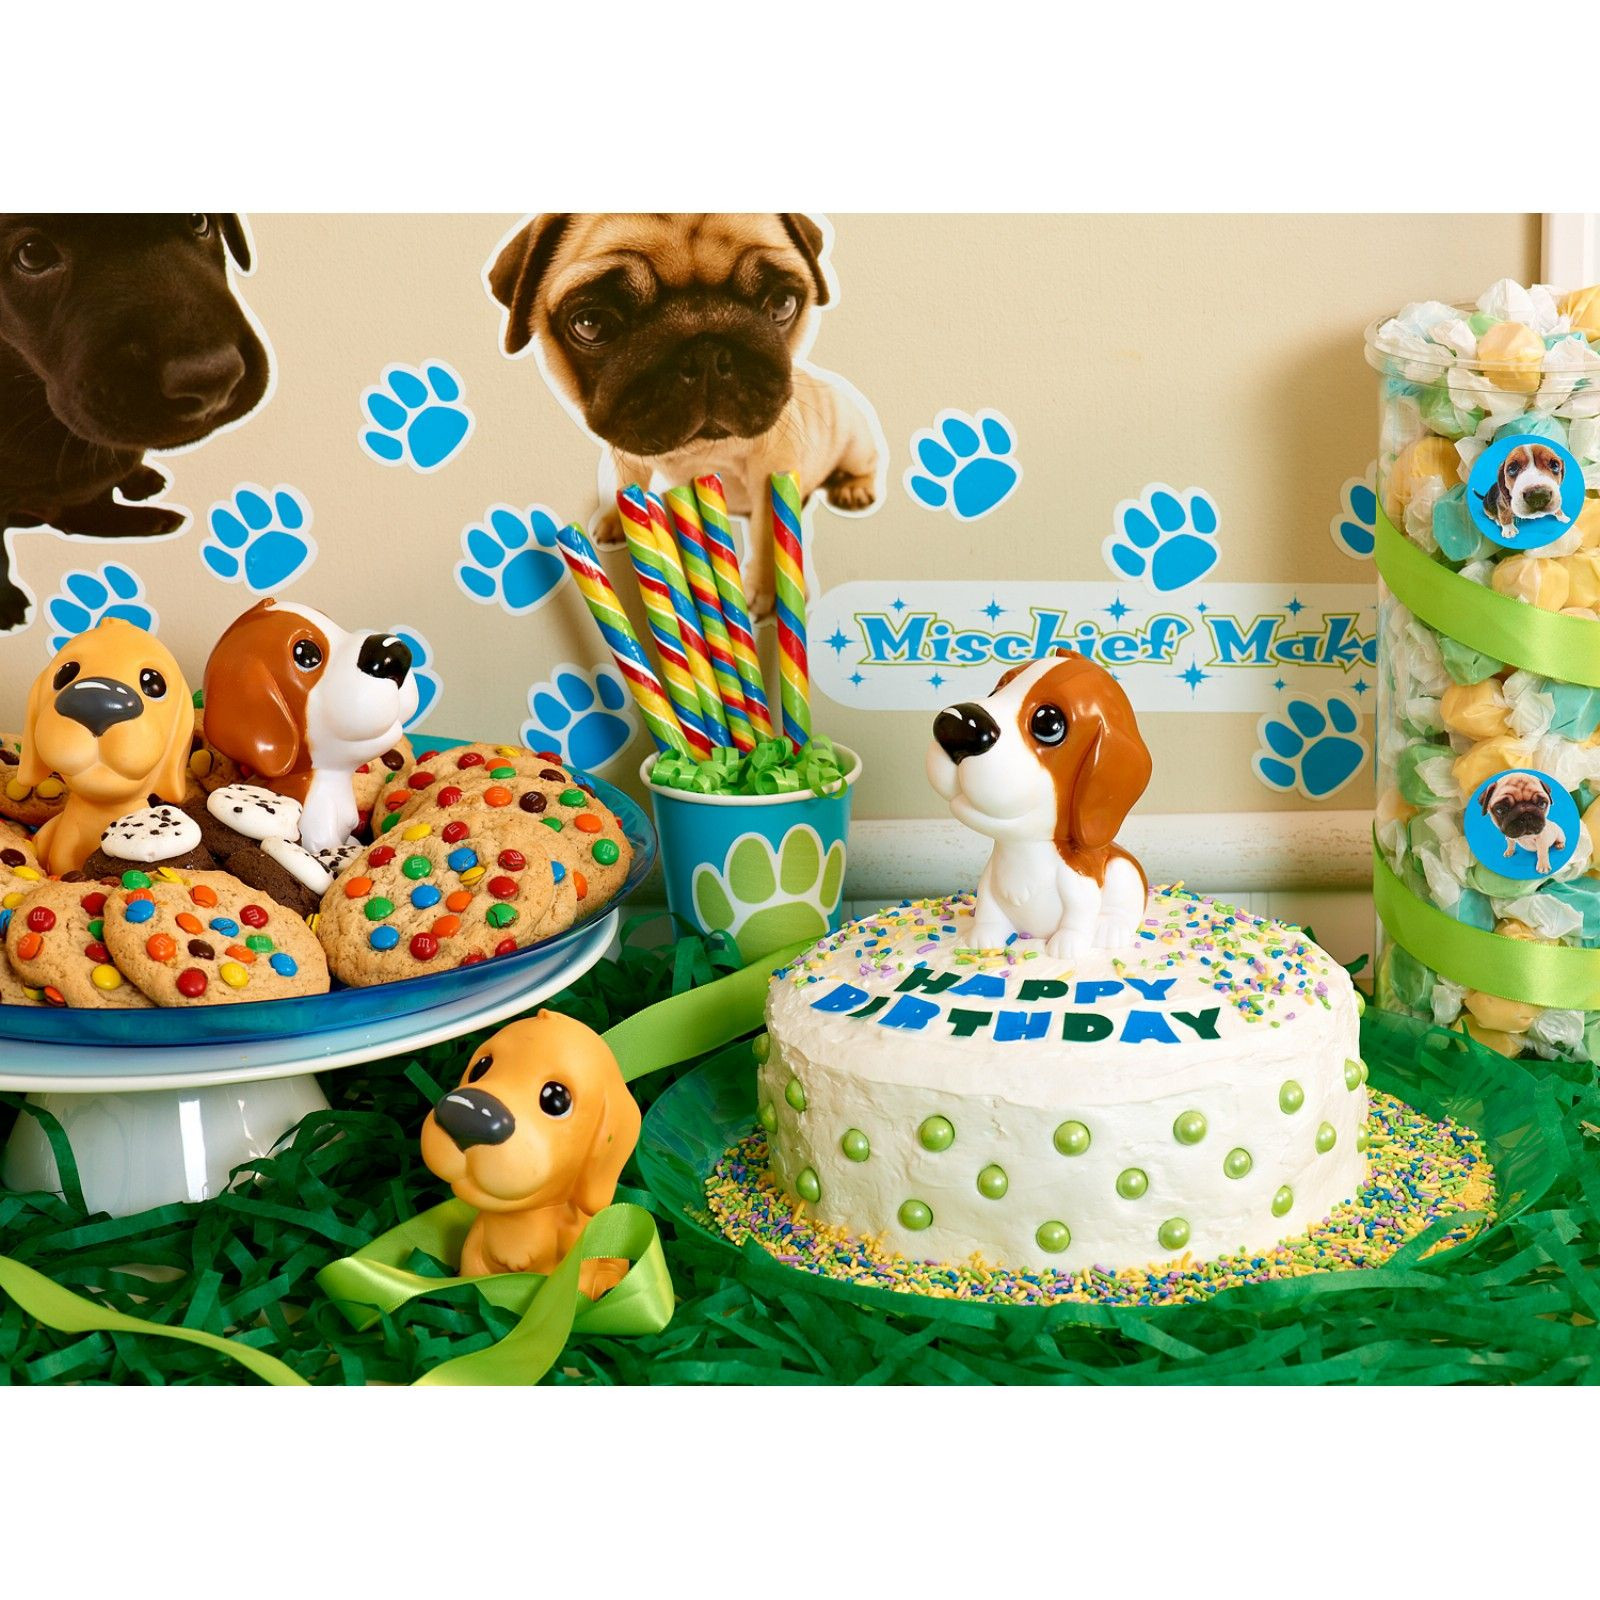 Dog Birthday Party Supplies  Artlist Collection THE DOG — Party Supplies $17 50